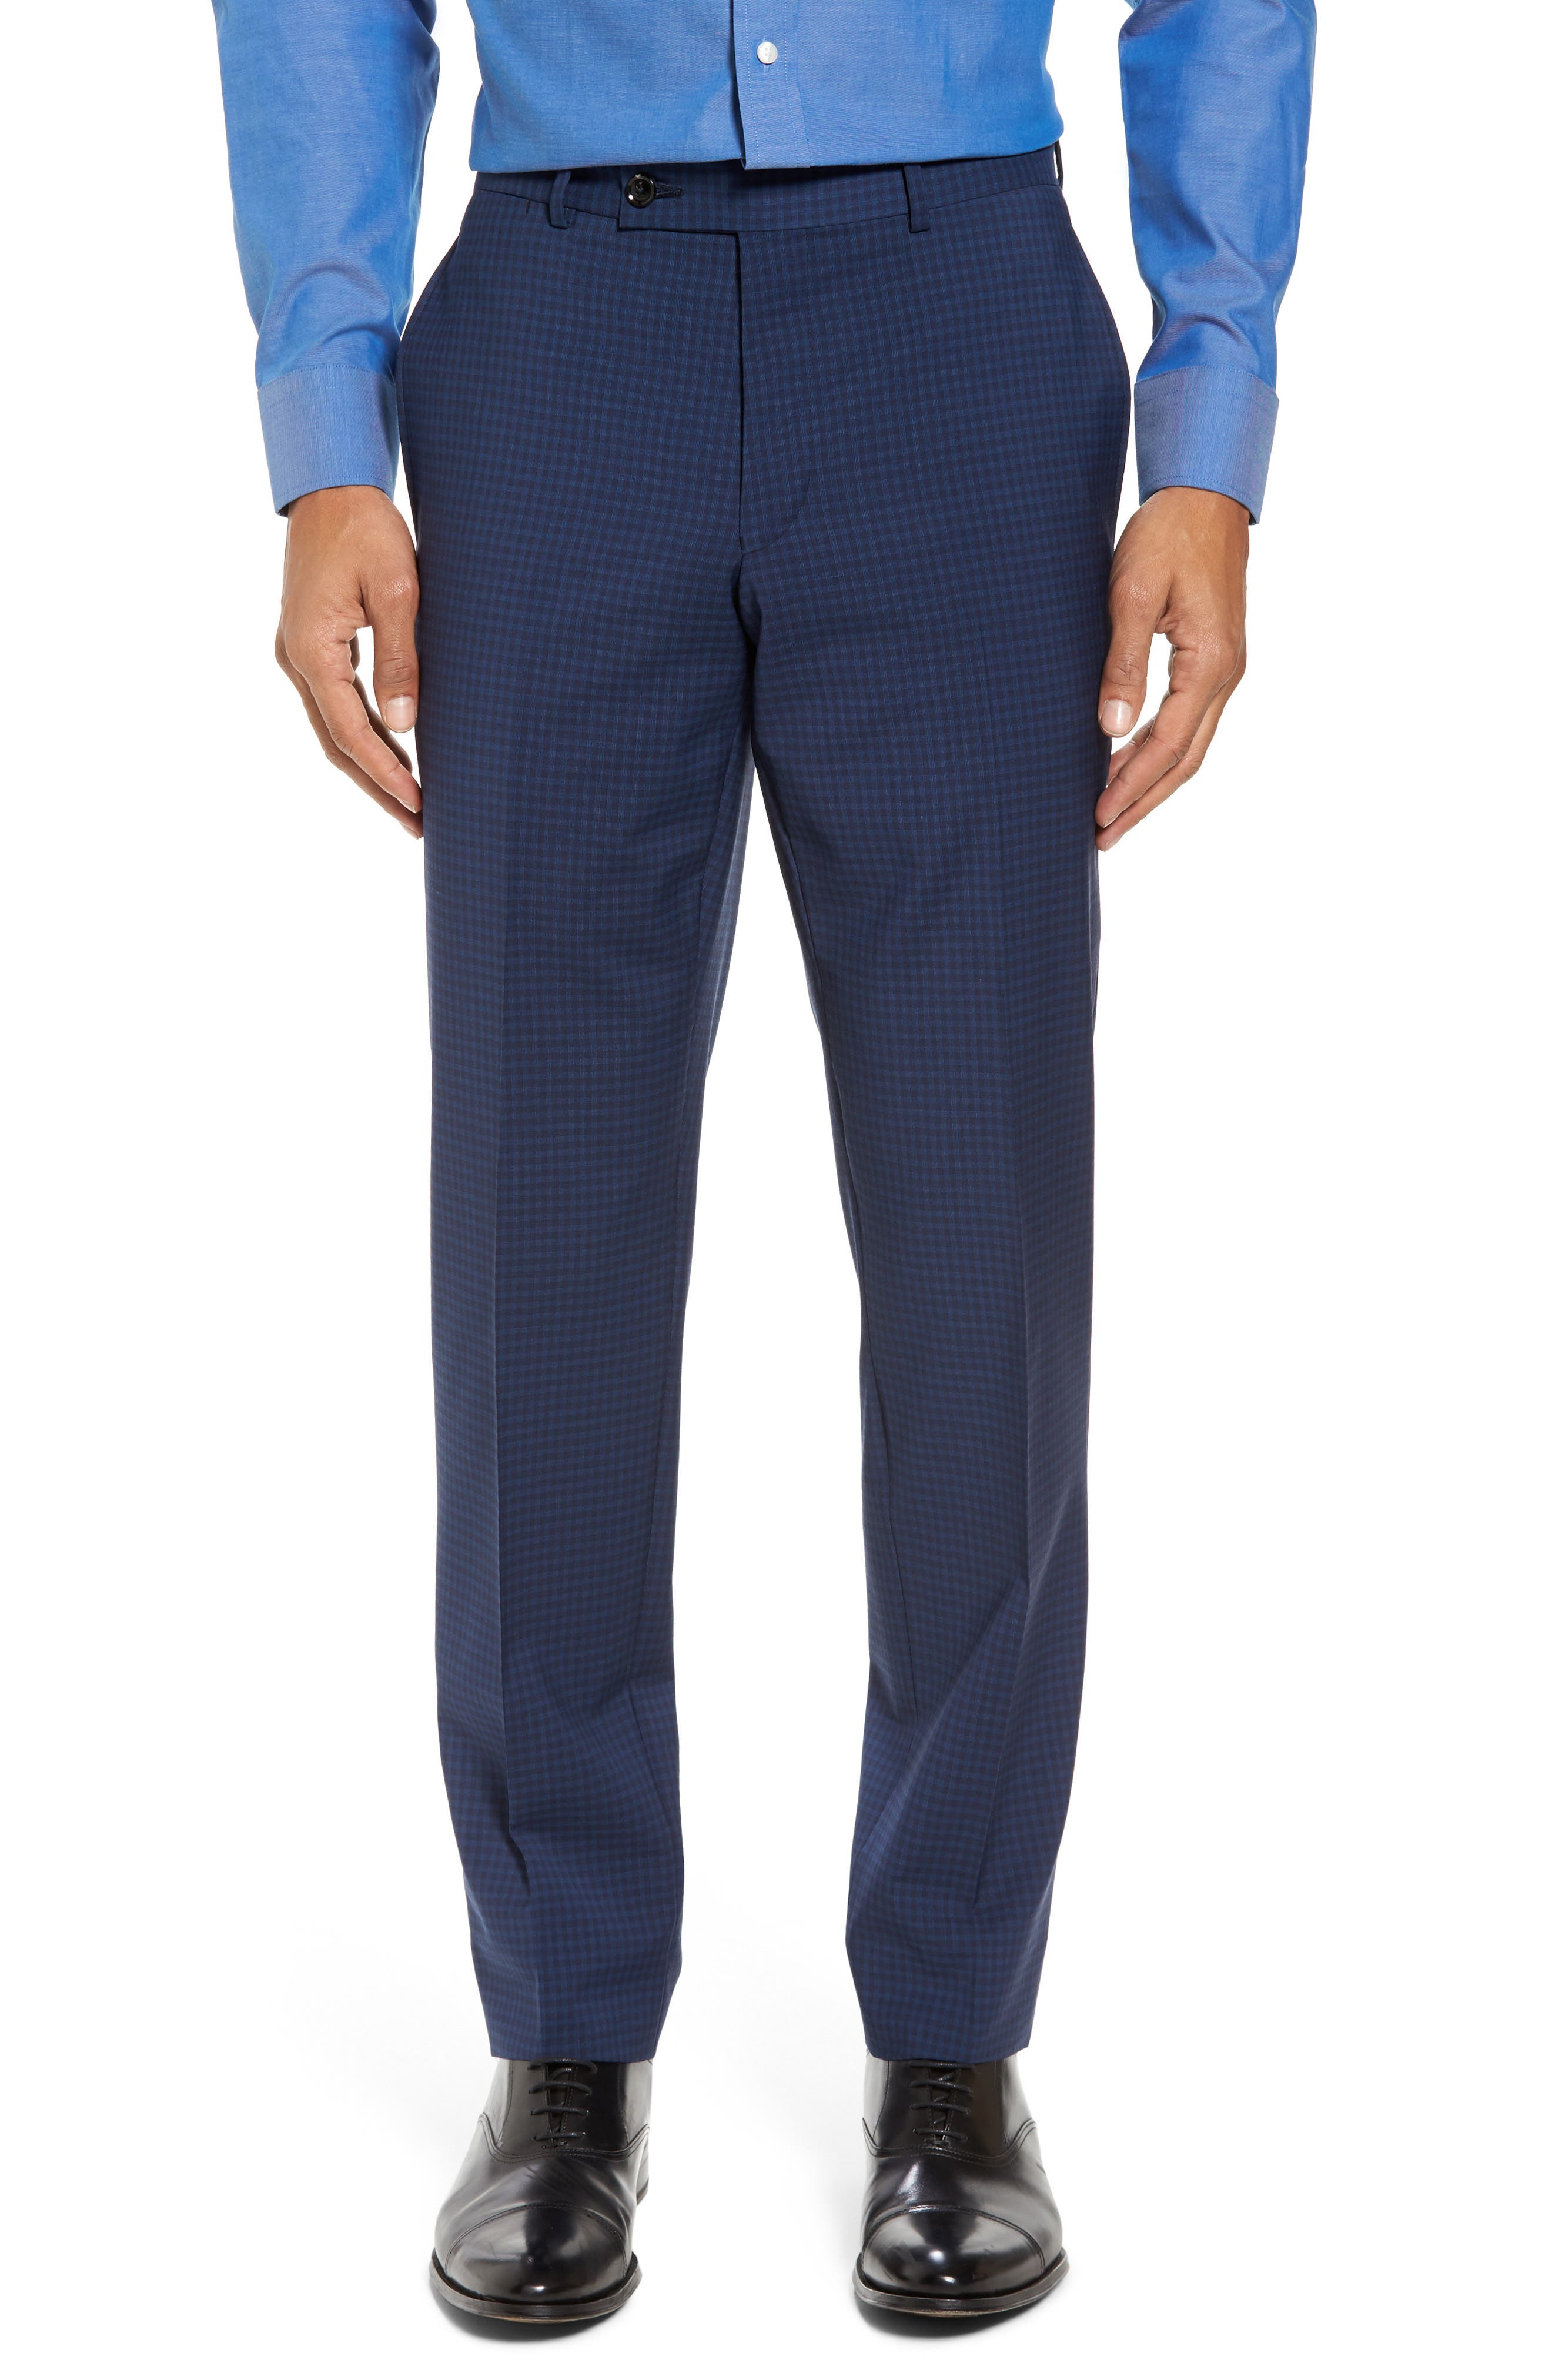 Jay Trim Fit Stretch Wool Suit,                             Alternate thumbnail 6, color,                             Blue